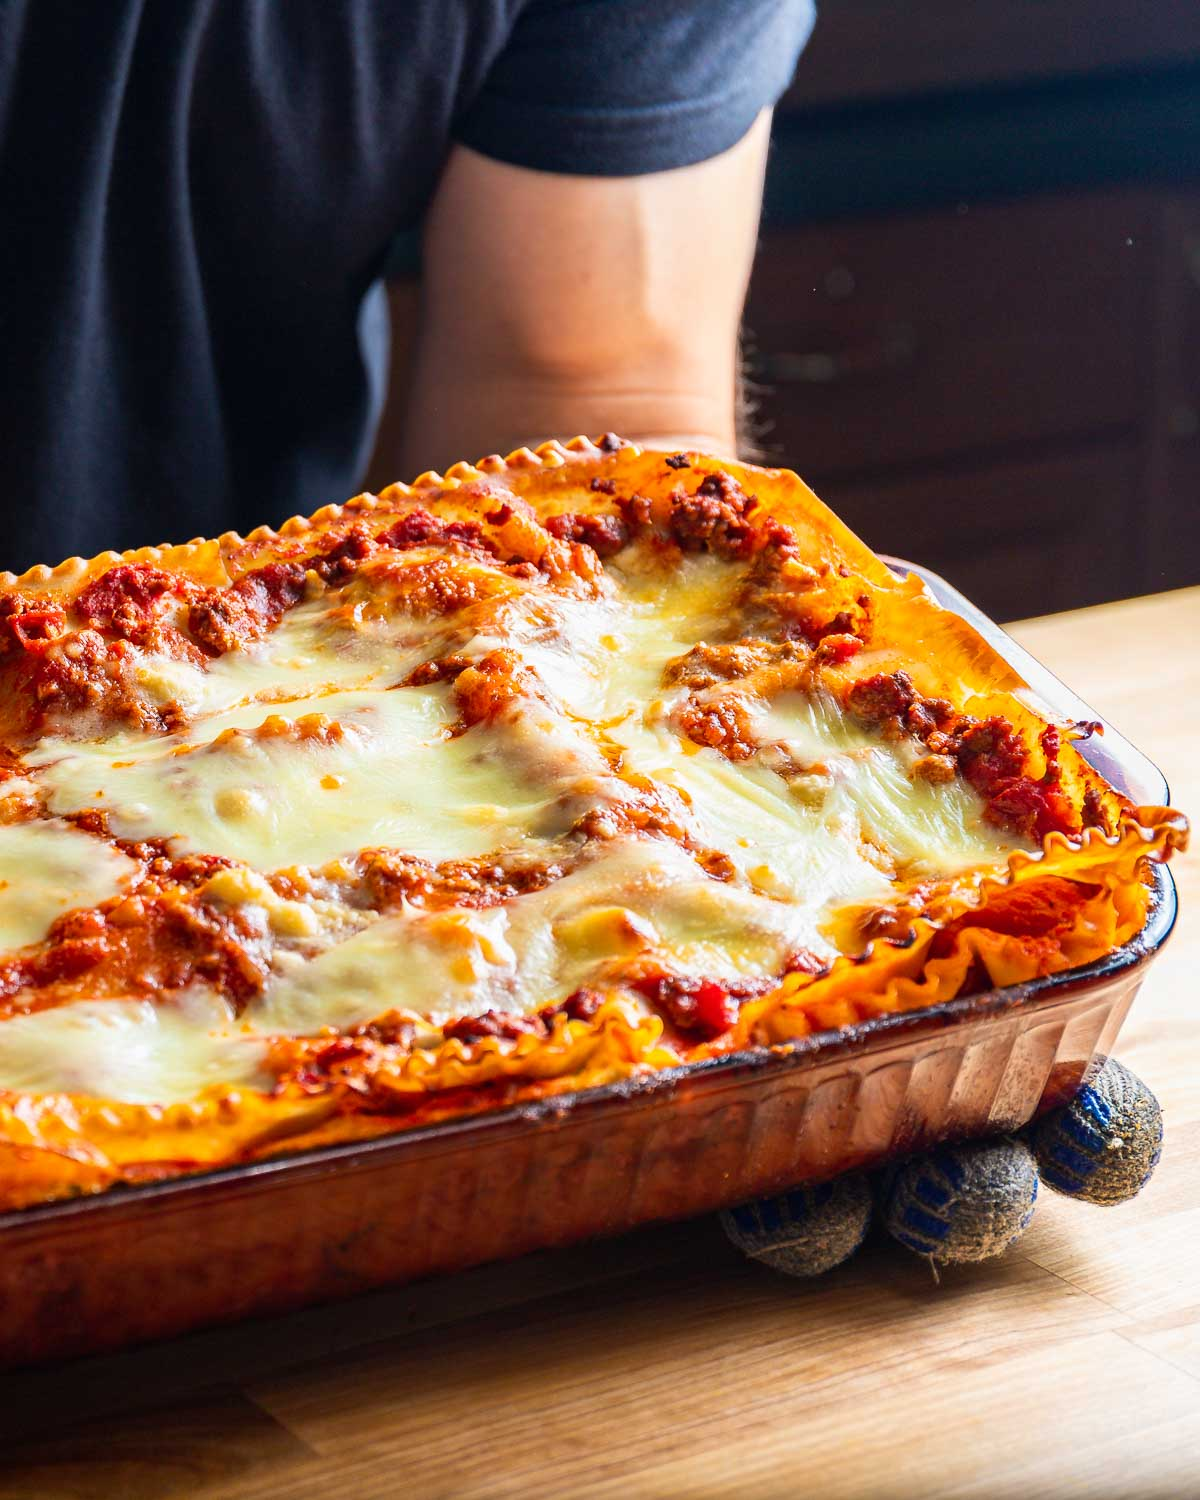 Lasagna in glass baking dish being held over table.